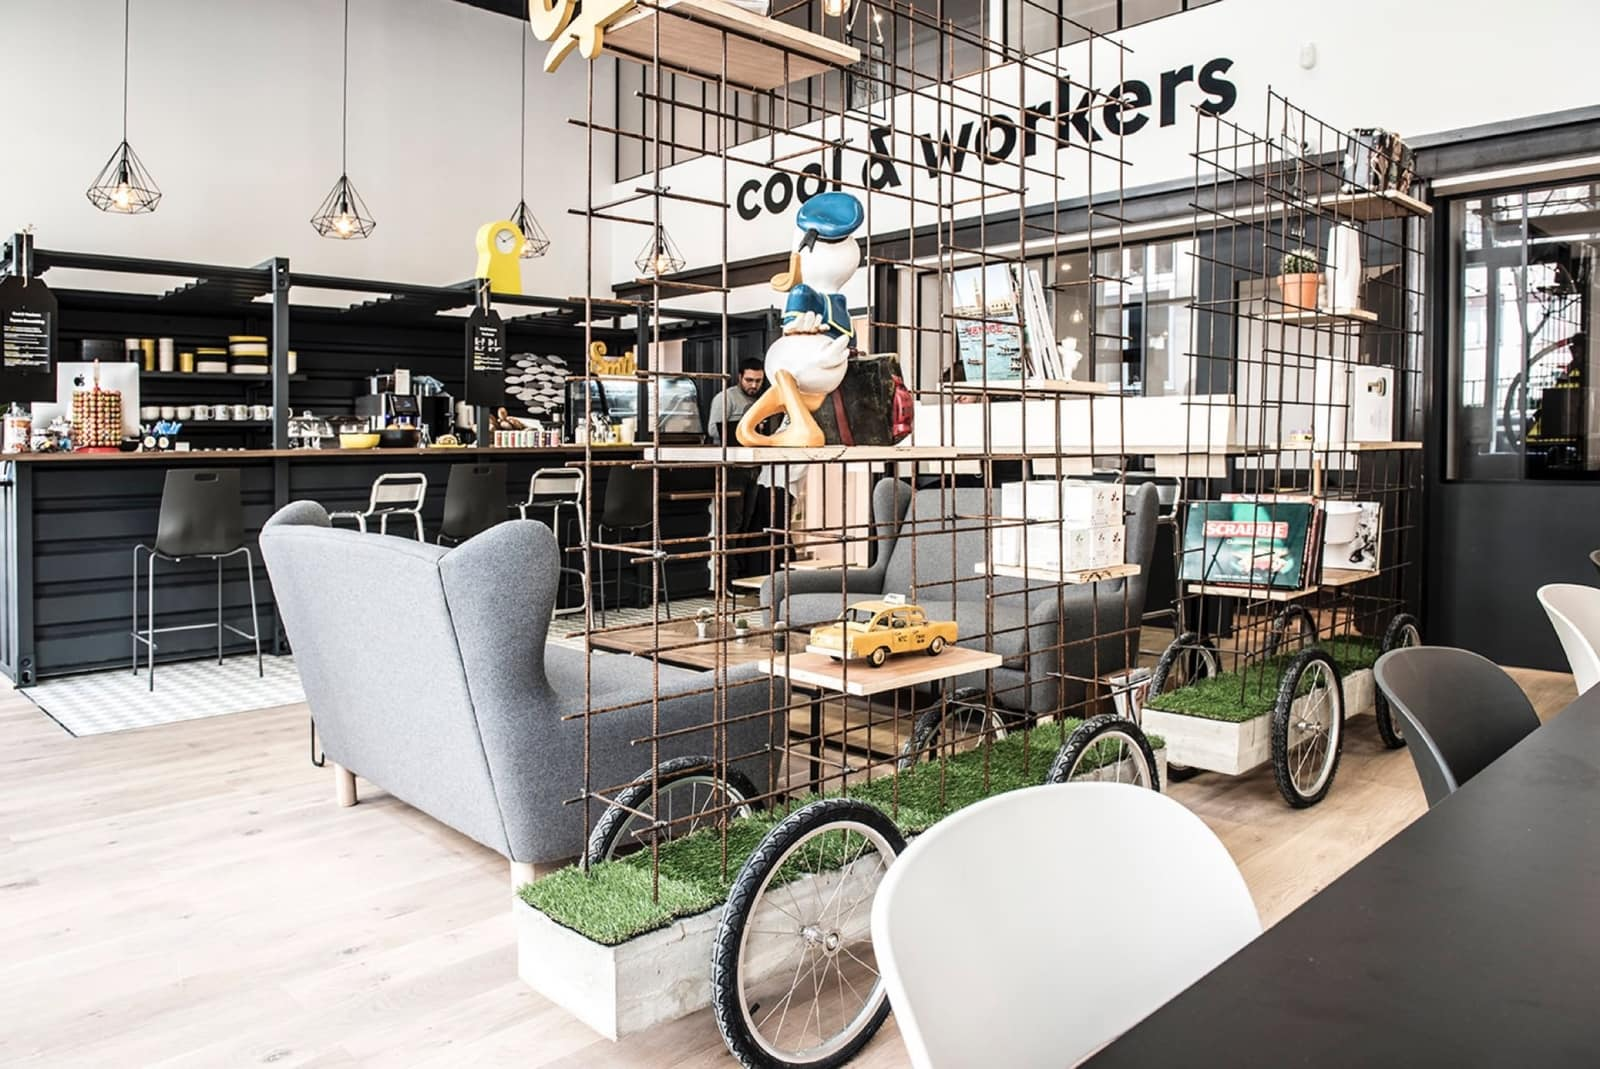 Cool & Workers - Café Coworking